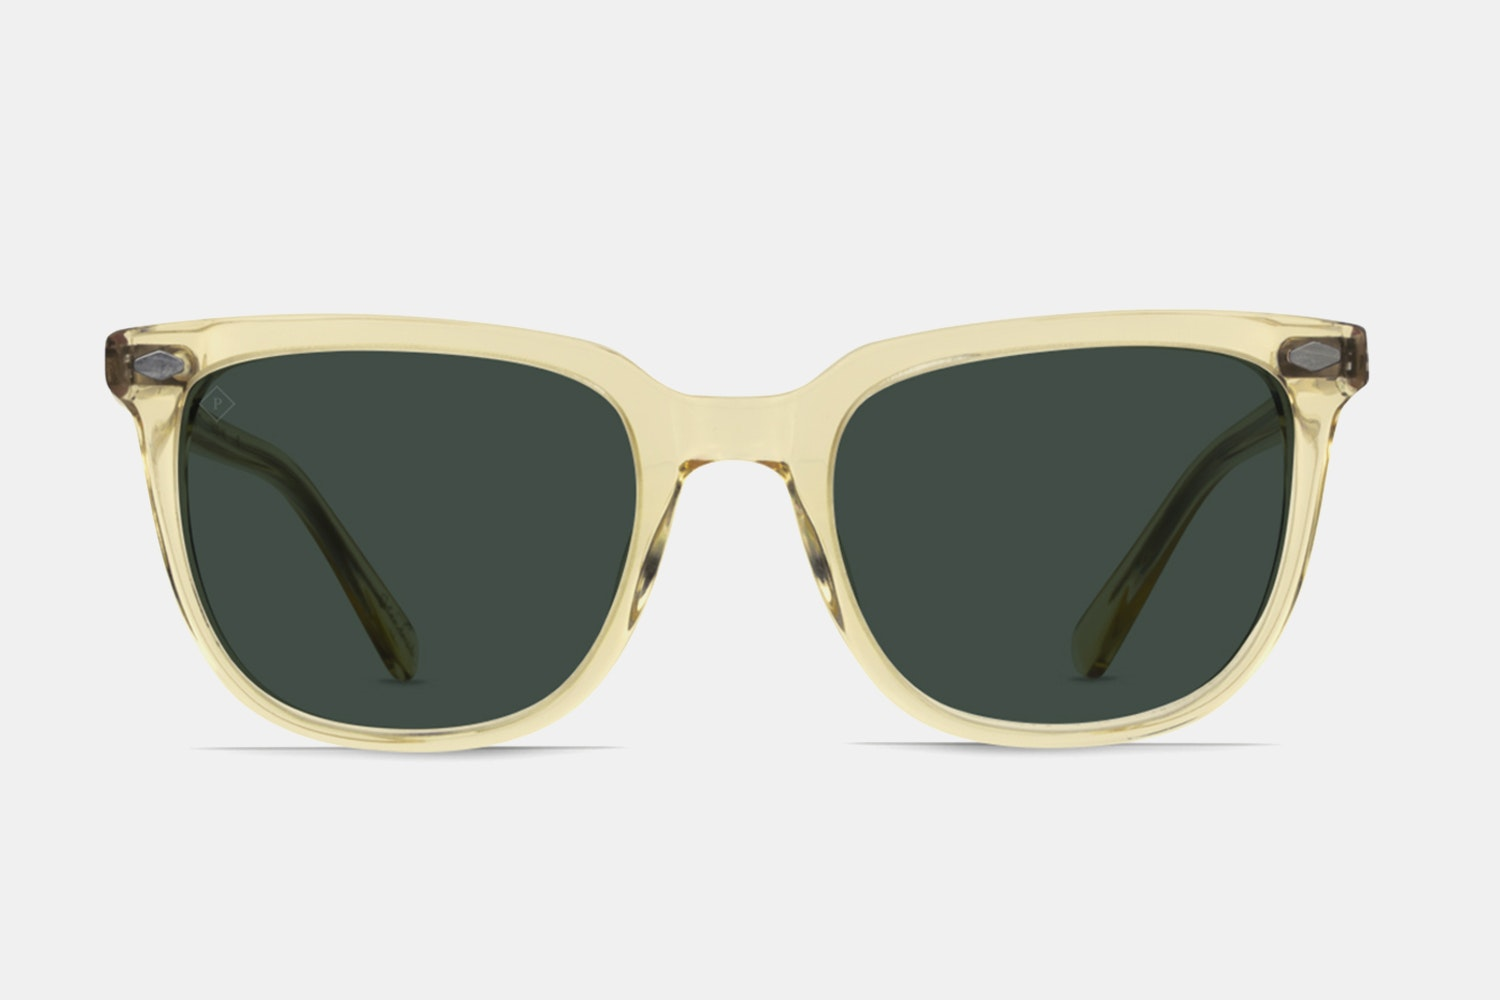 Champagne crystal/green polarized (+ $15)